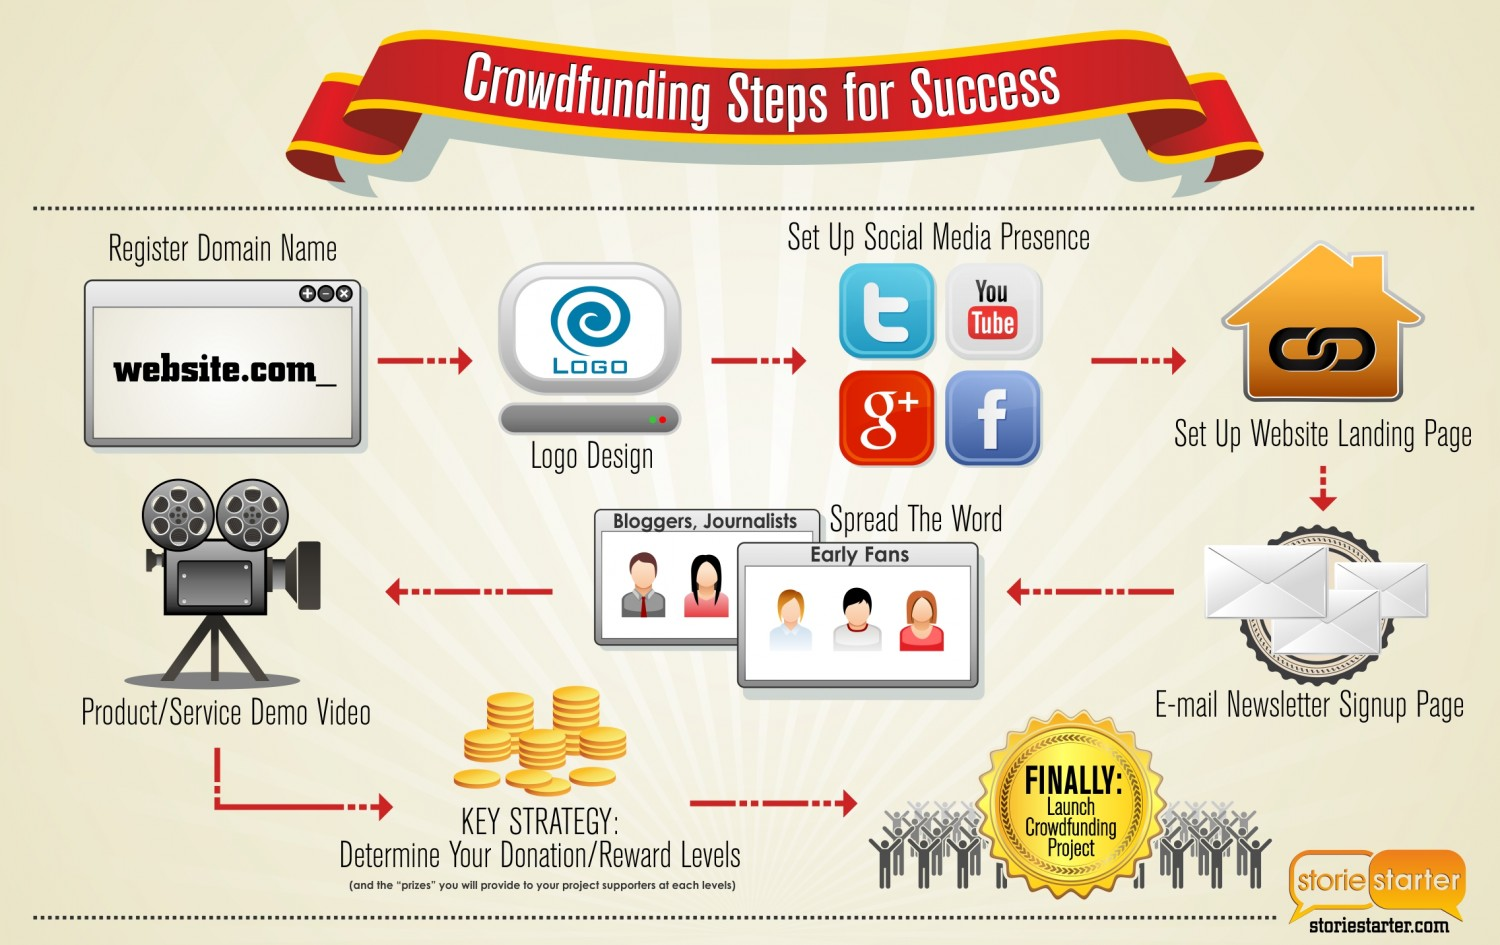 crowdfunding-steps-for-success